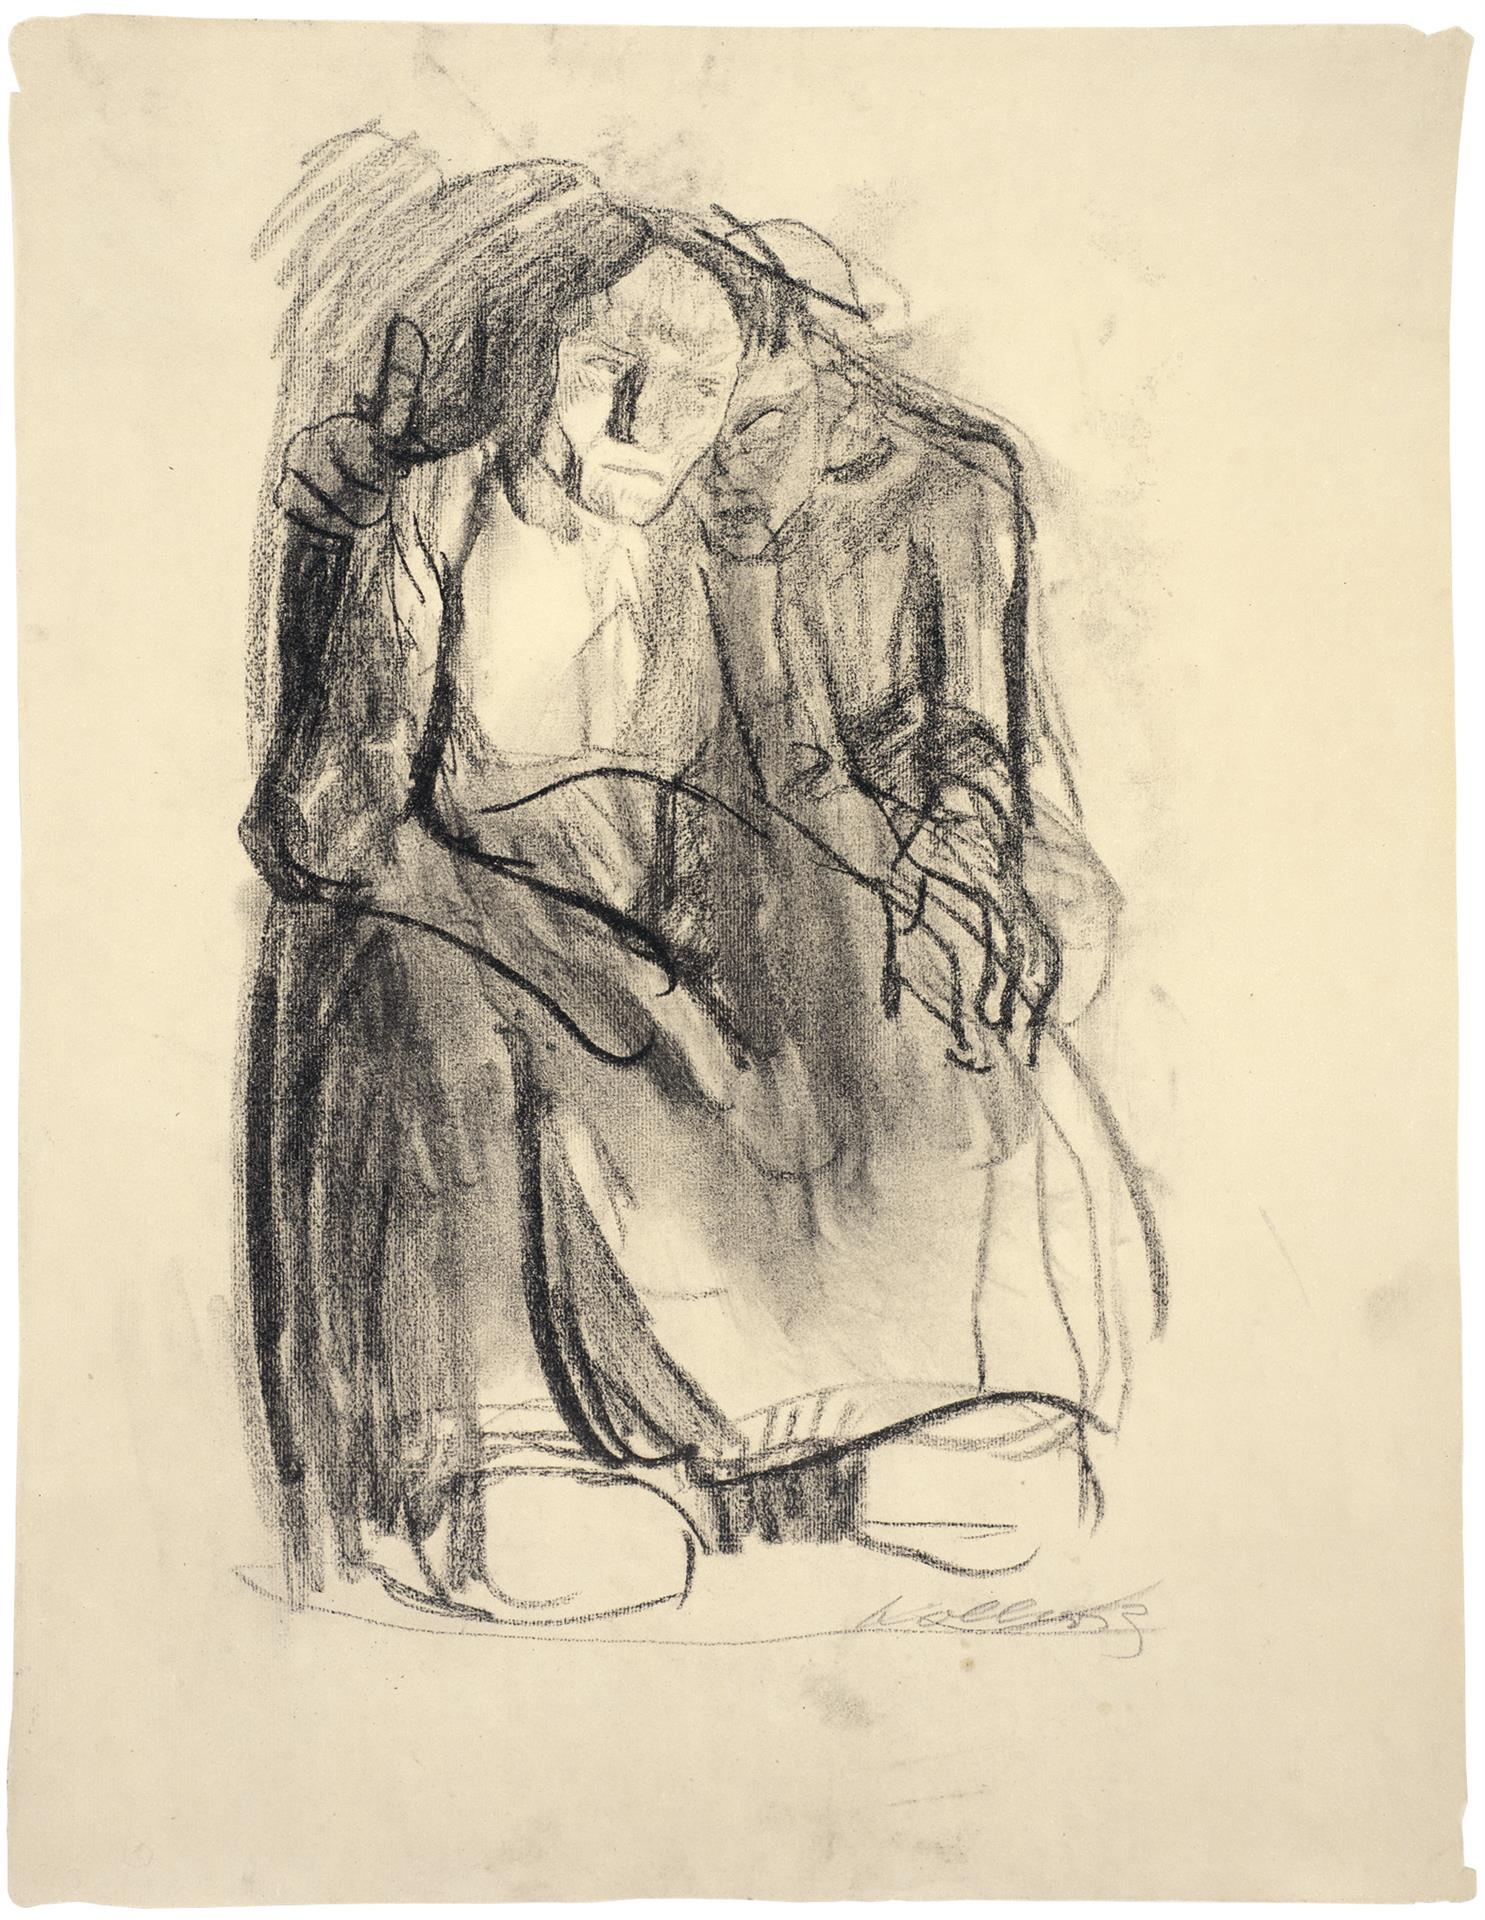 Käthe Kollwitz, Inspiration, 1904/1905, charcoal on Ingres paper, NT 296, Cologne Kollwitz Collection © Käthe Kollwitz Museum Köln